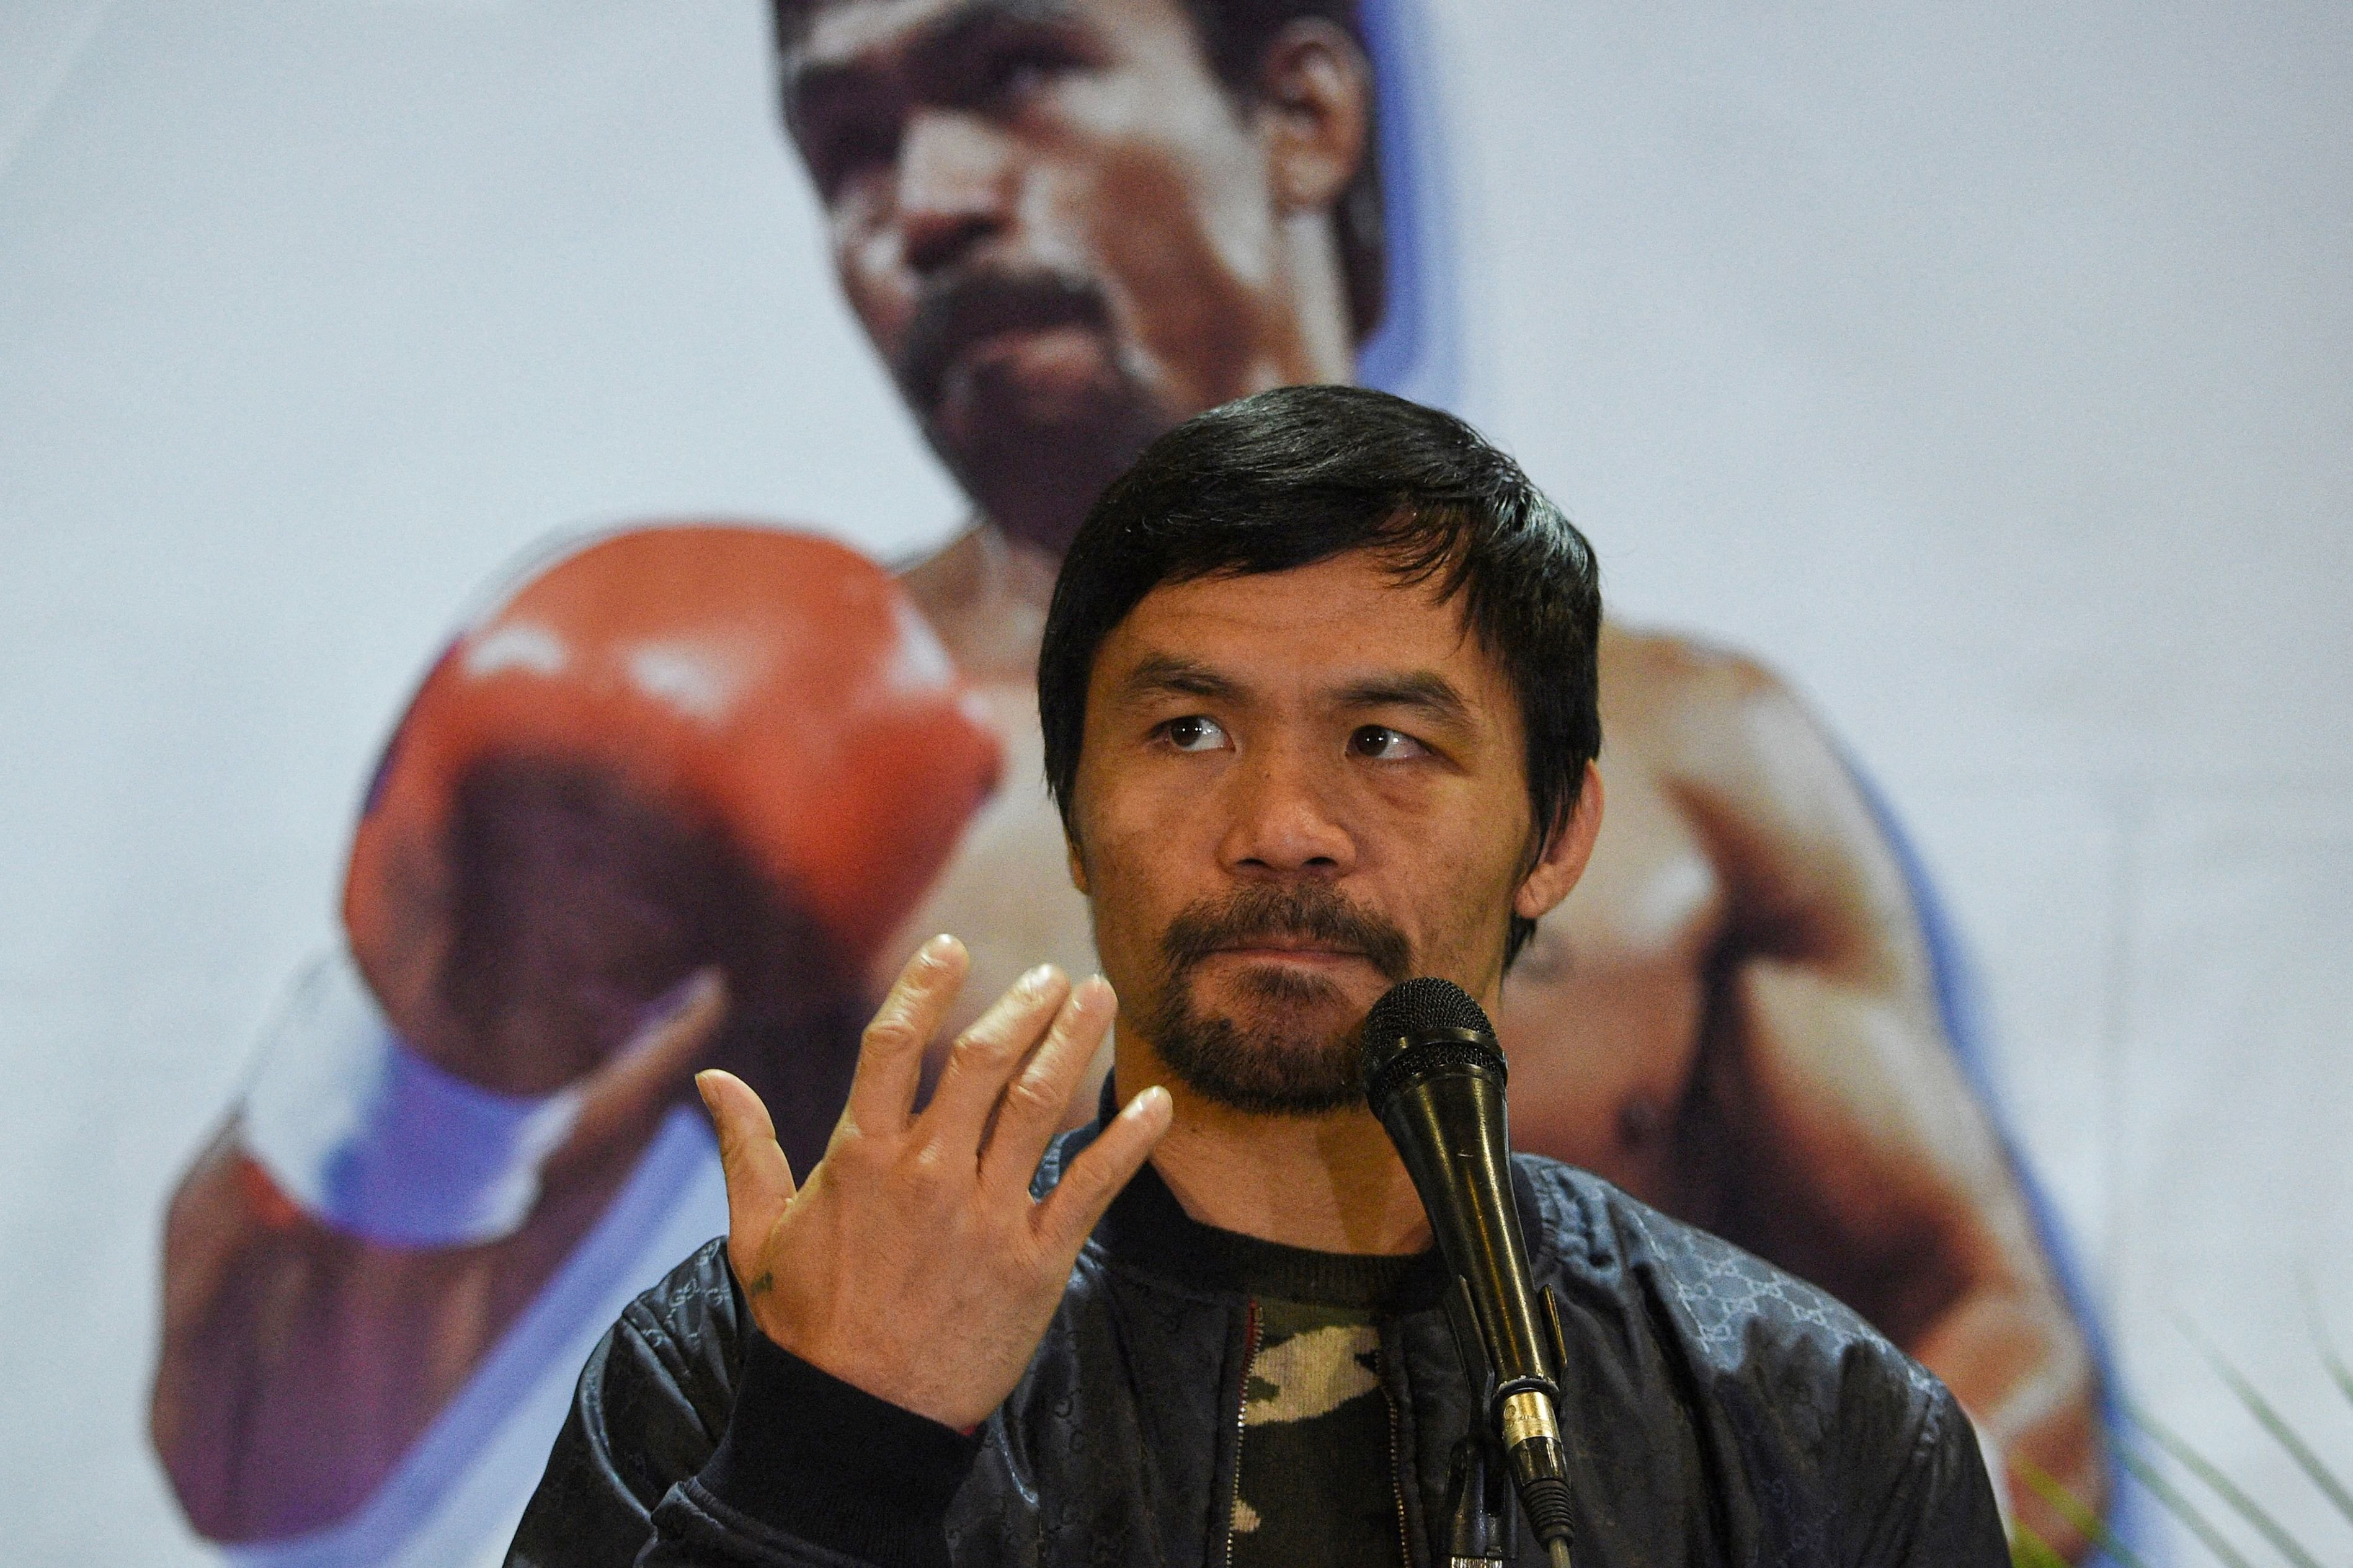 Boxer Manny Pacquiao to run for Philippine president